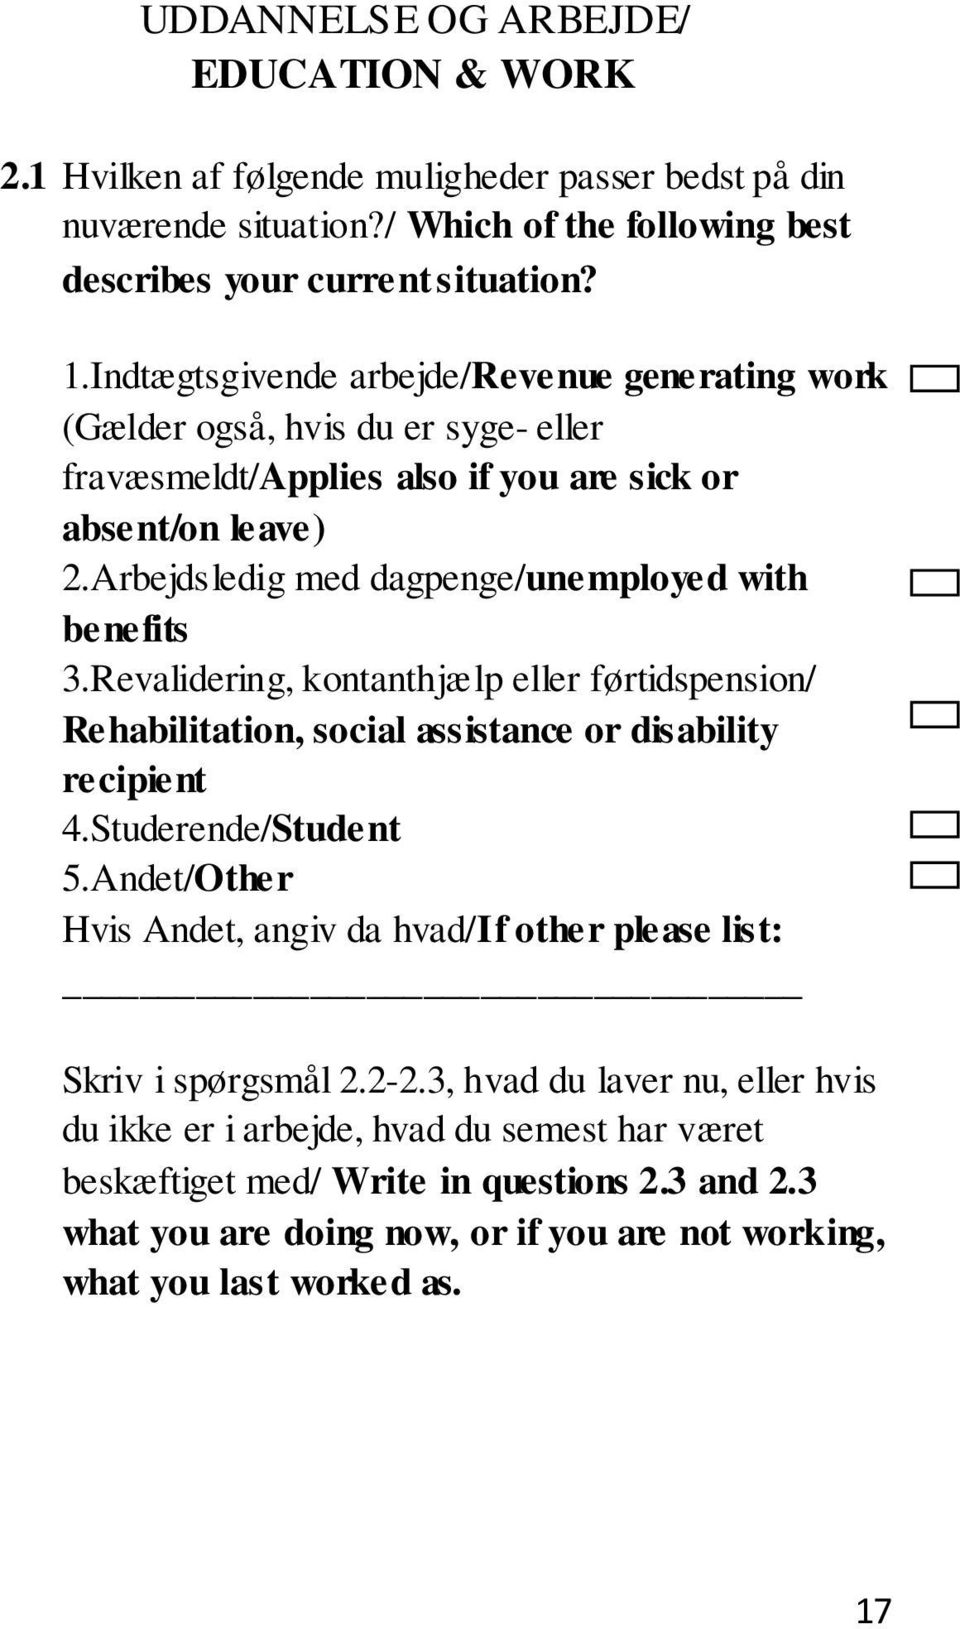 Arbejdsledig med dagpenge/unemployed with benefits 3.Revalidering, kontanthjælp eller førtidspension/ Rehabilitation, social assistance or disability recipient 4.Studerende/Student 5.